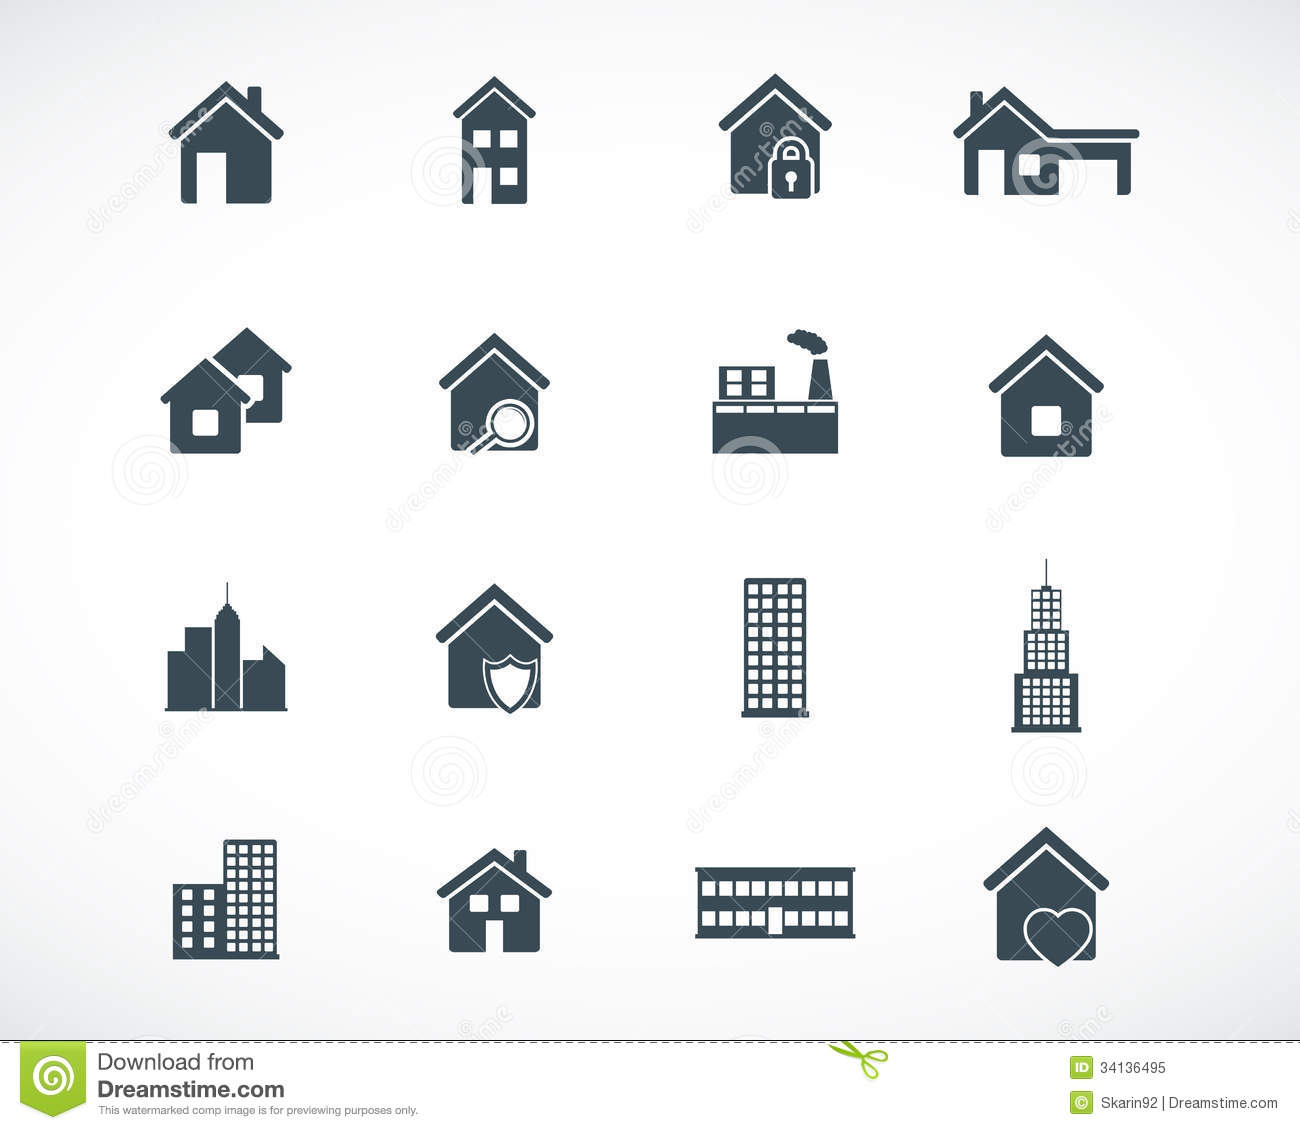 20 Vector Building Icon Images